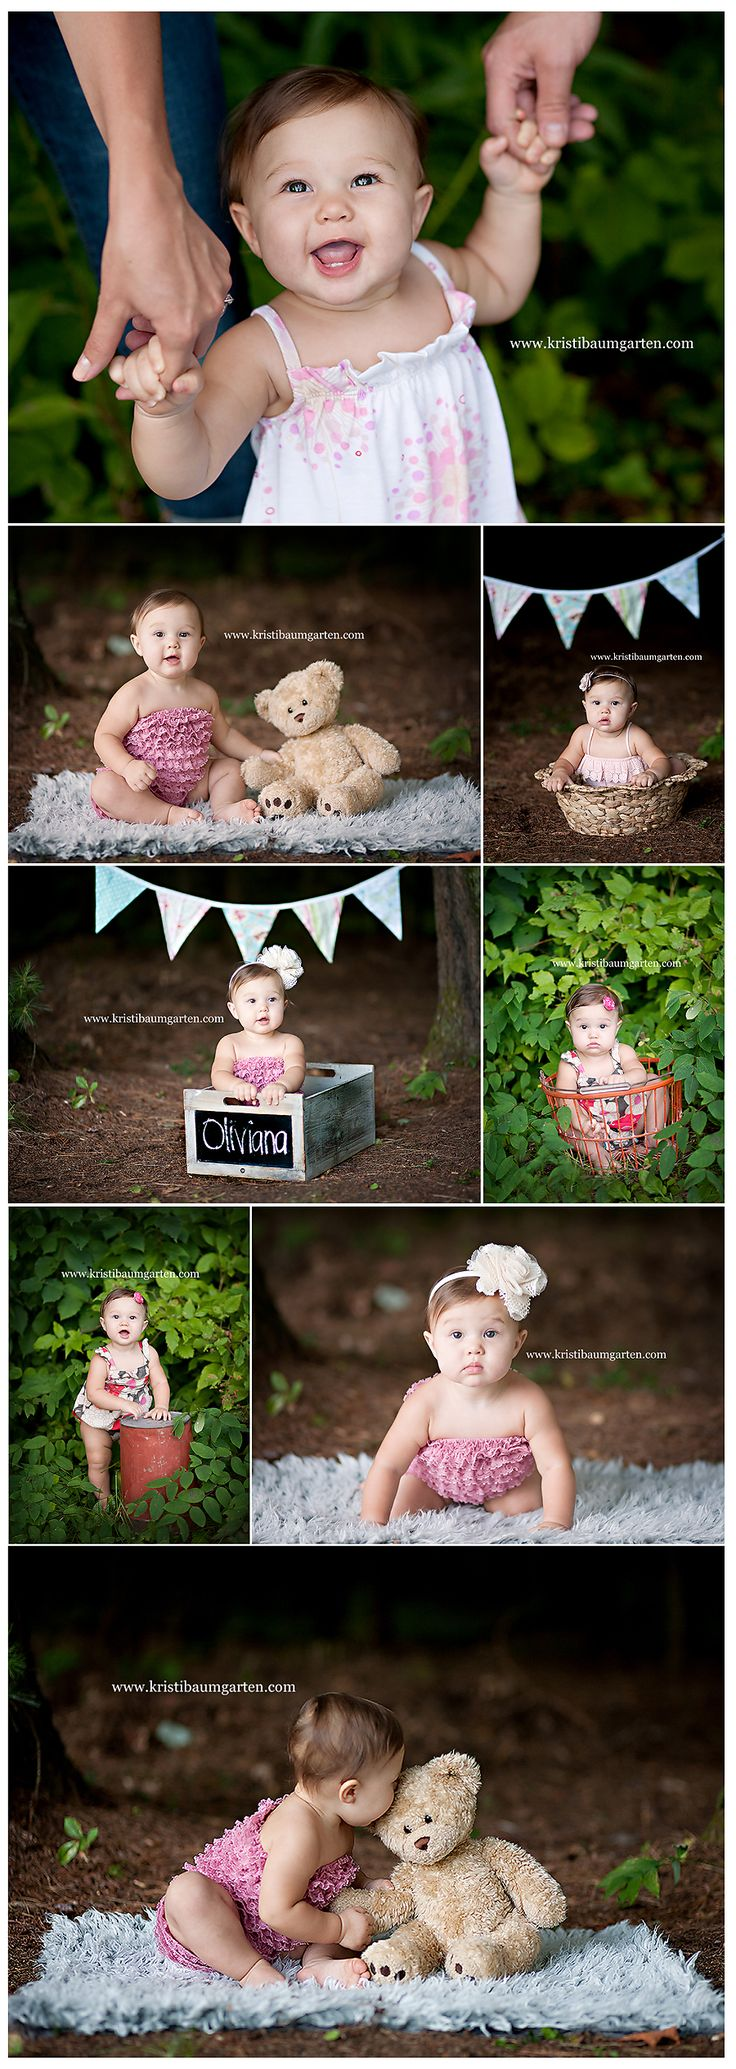 baby photos - i need to make a little box like that with the chalkboard paint! This whole set is cute. I love underexposed background